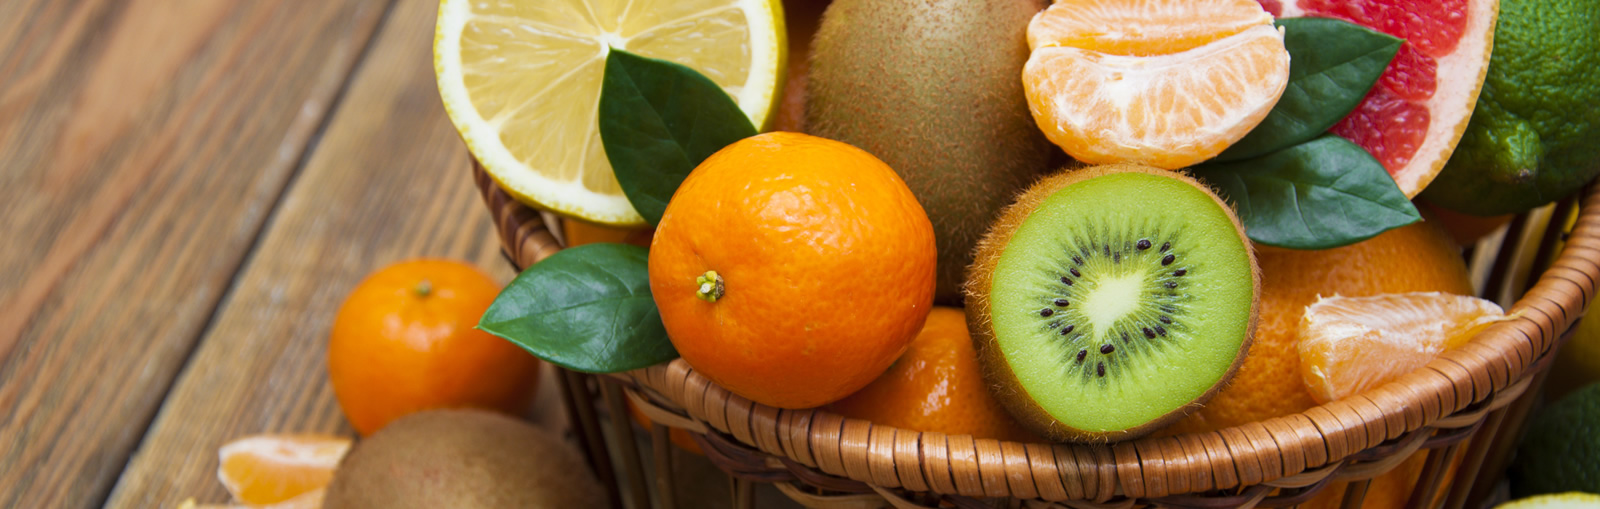 fruitbasket-header.jpg